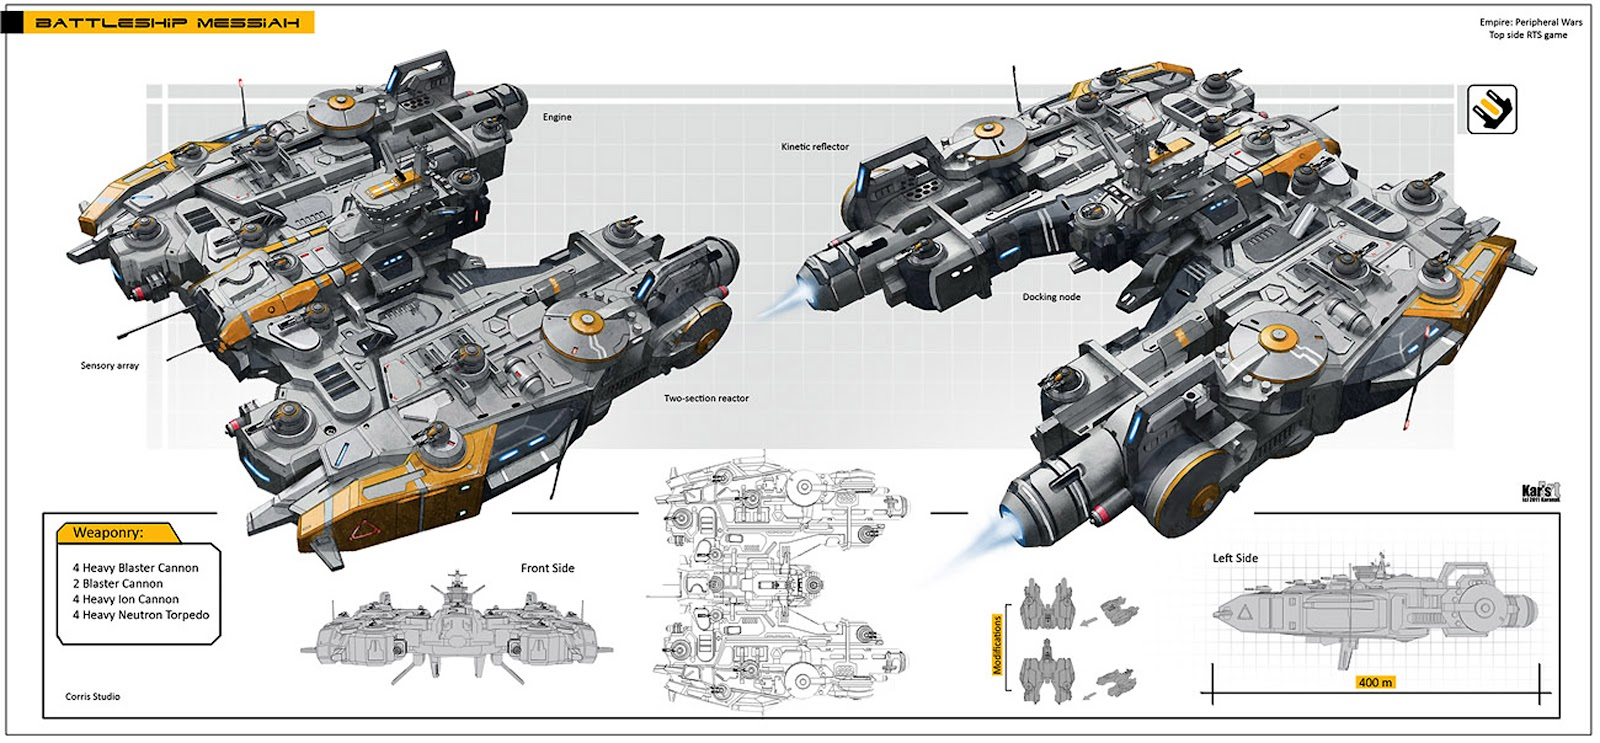 lynx helicopter engine with Spacecrafts Spaceships And Ste Unk on Fluorine Kprawl P1 in addition Ec135p3 calstar moreover H 1yz kaman likewise Printthread together with P275359.